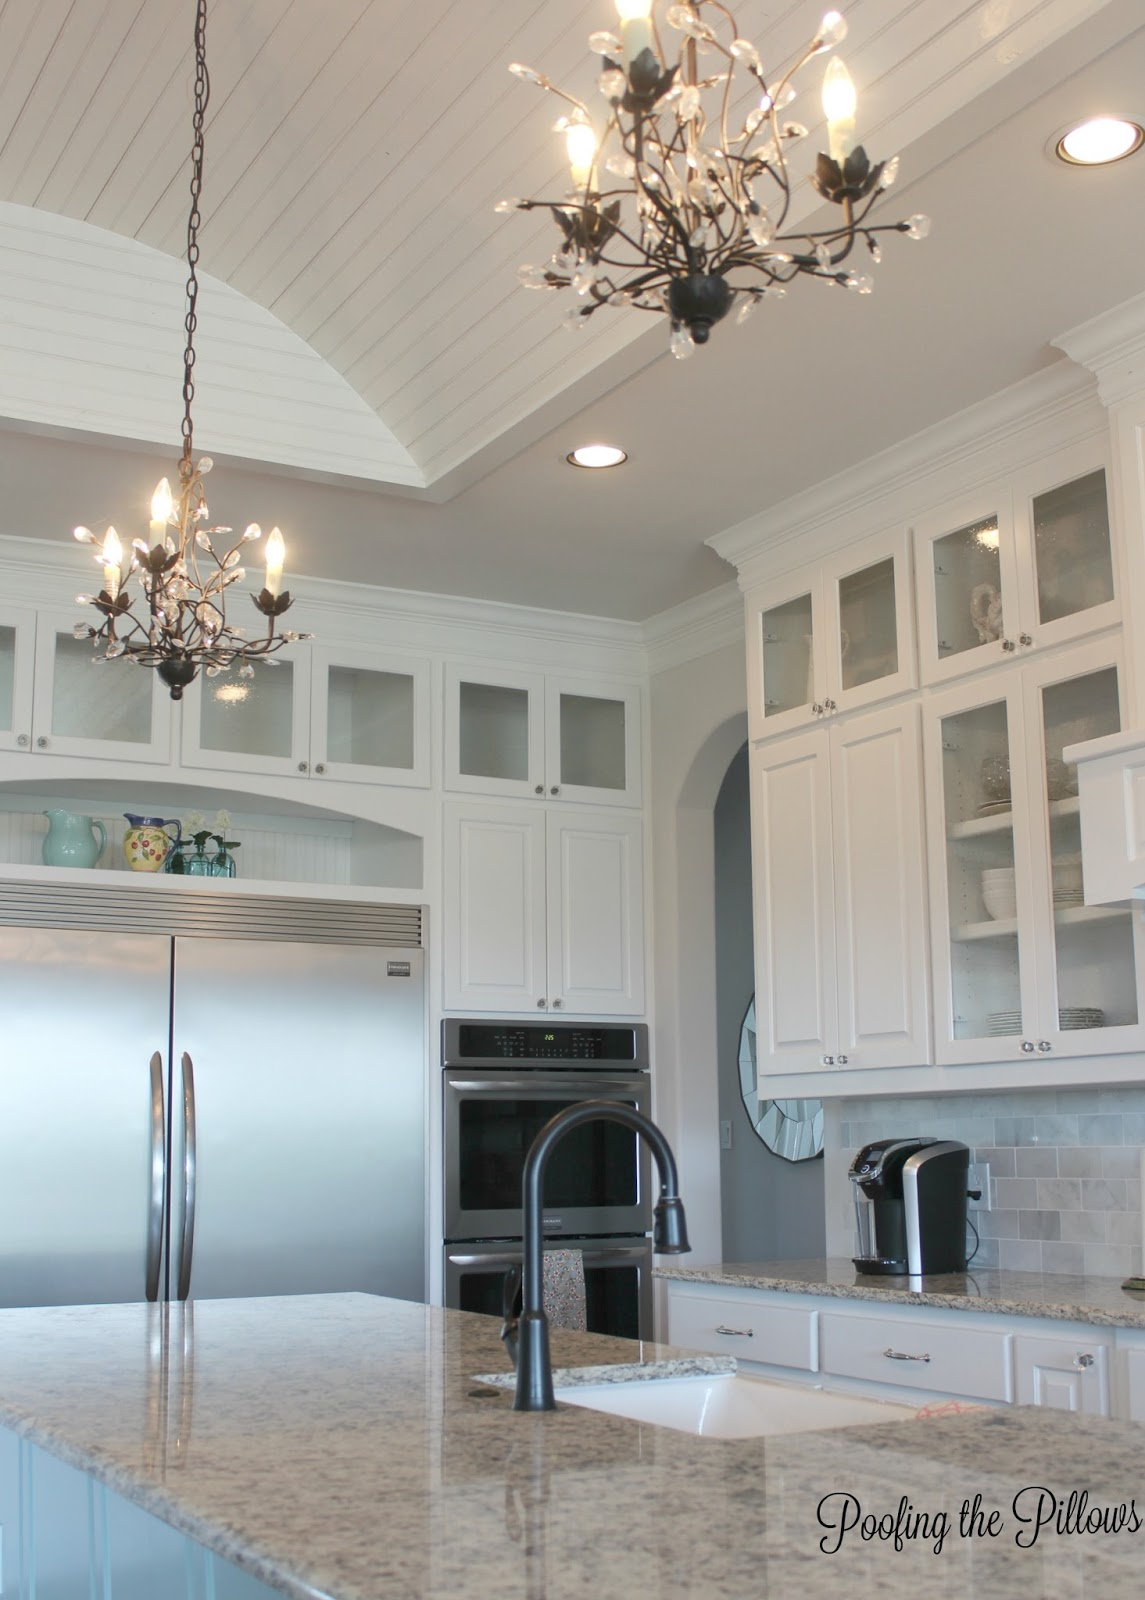 Light and and bright is the name of the game in this Texas kitchen with white cabinets, glass inserts, granite counter tops, stainless appliances and a few farmhouse touches. Sherwin Williams Water on the island and the perfect chandeliers add favorite touches.